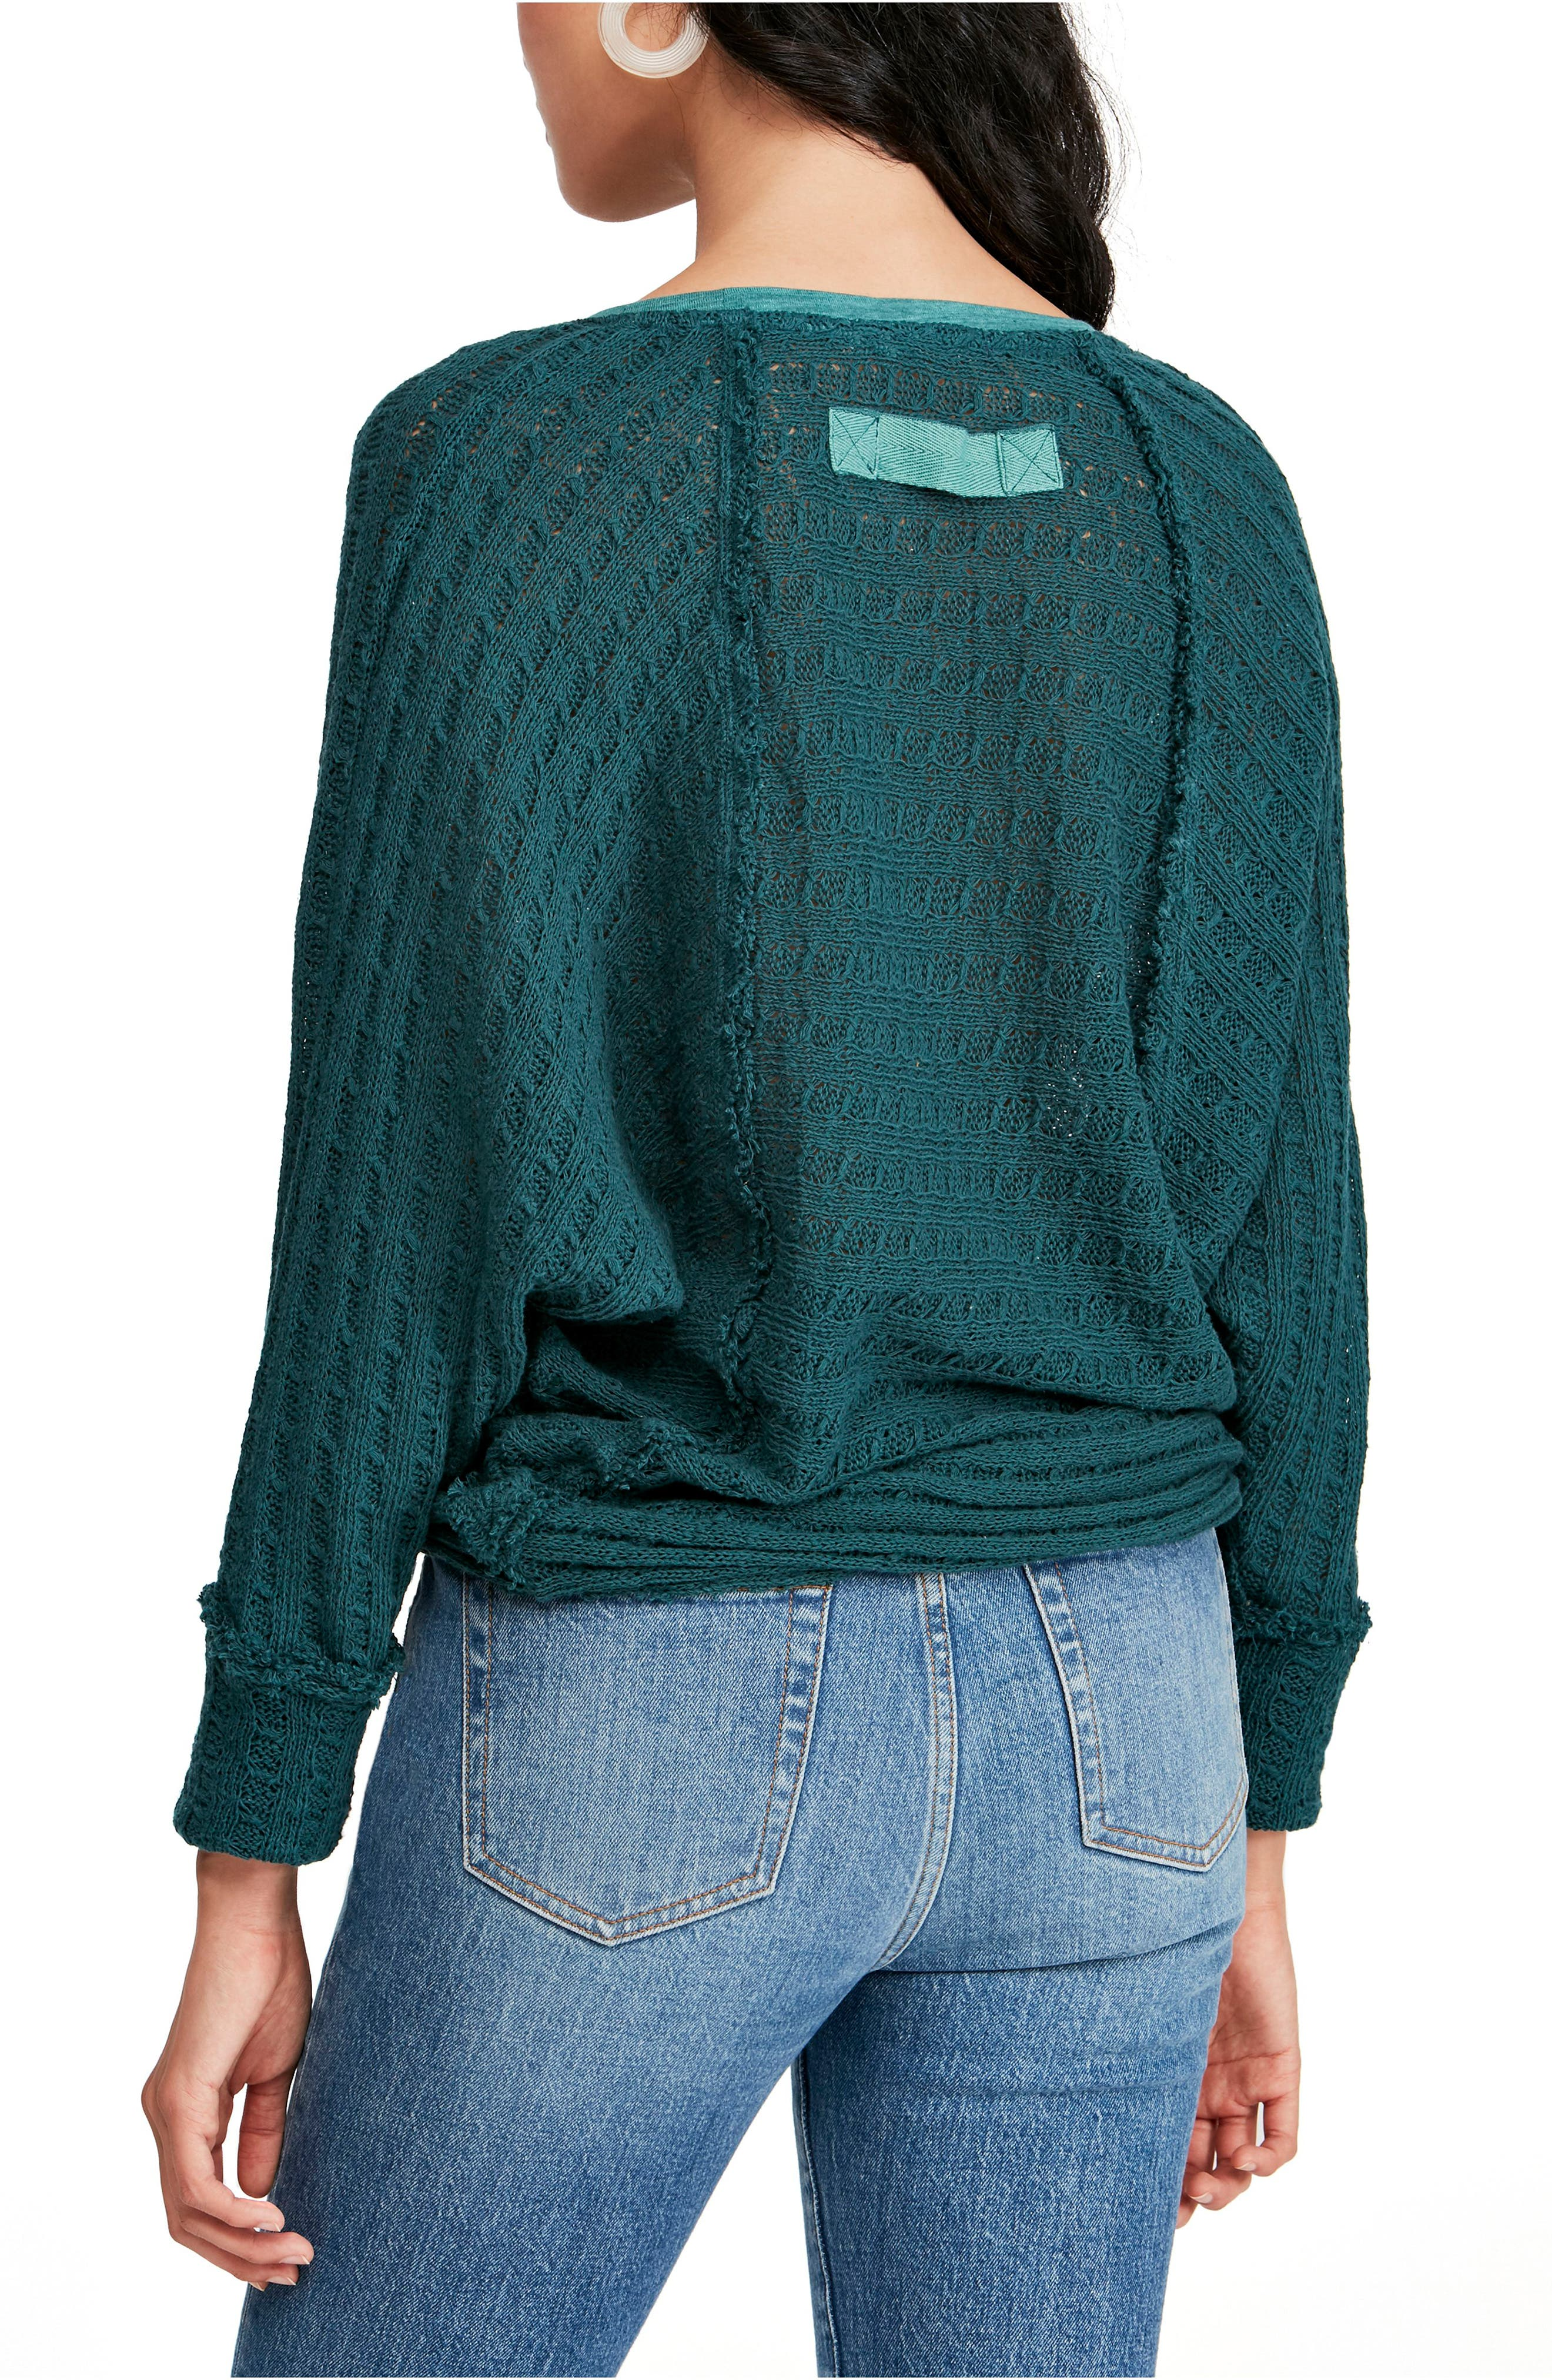 FREE PEOPLE, Thien's Hacci Top, Alternate thumbnail 2, color, TURQUOISE